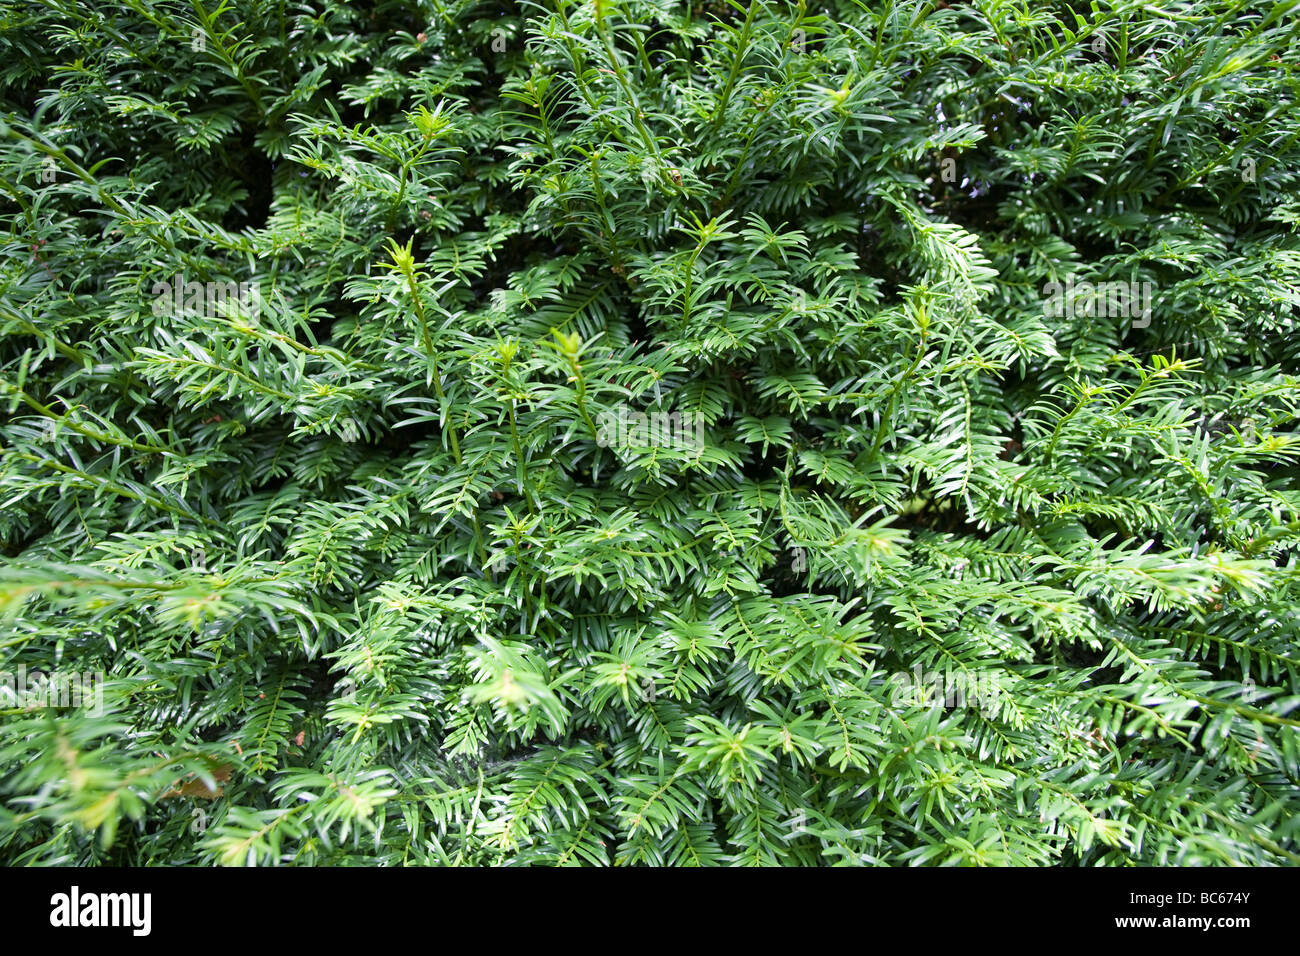 Close up of yew hedge showing only leaves - Stock Image